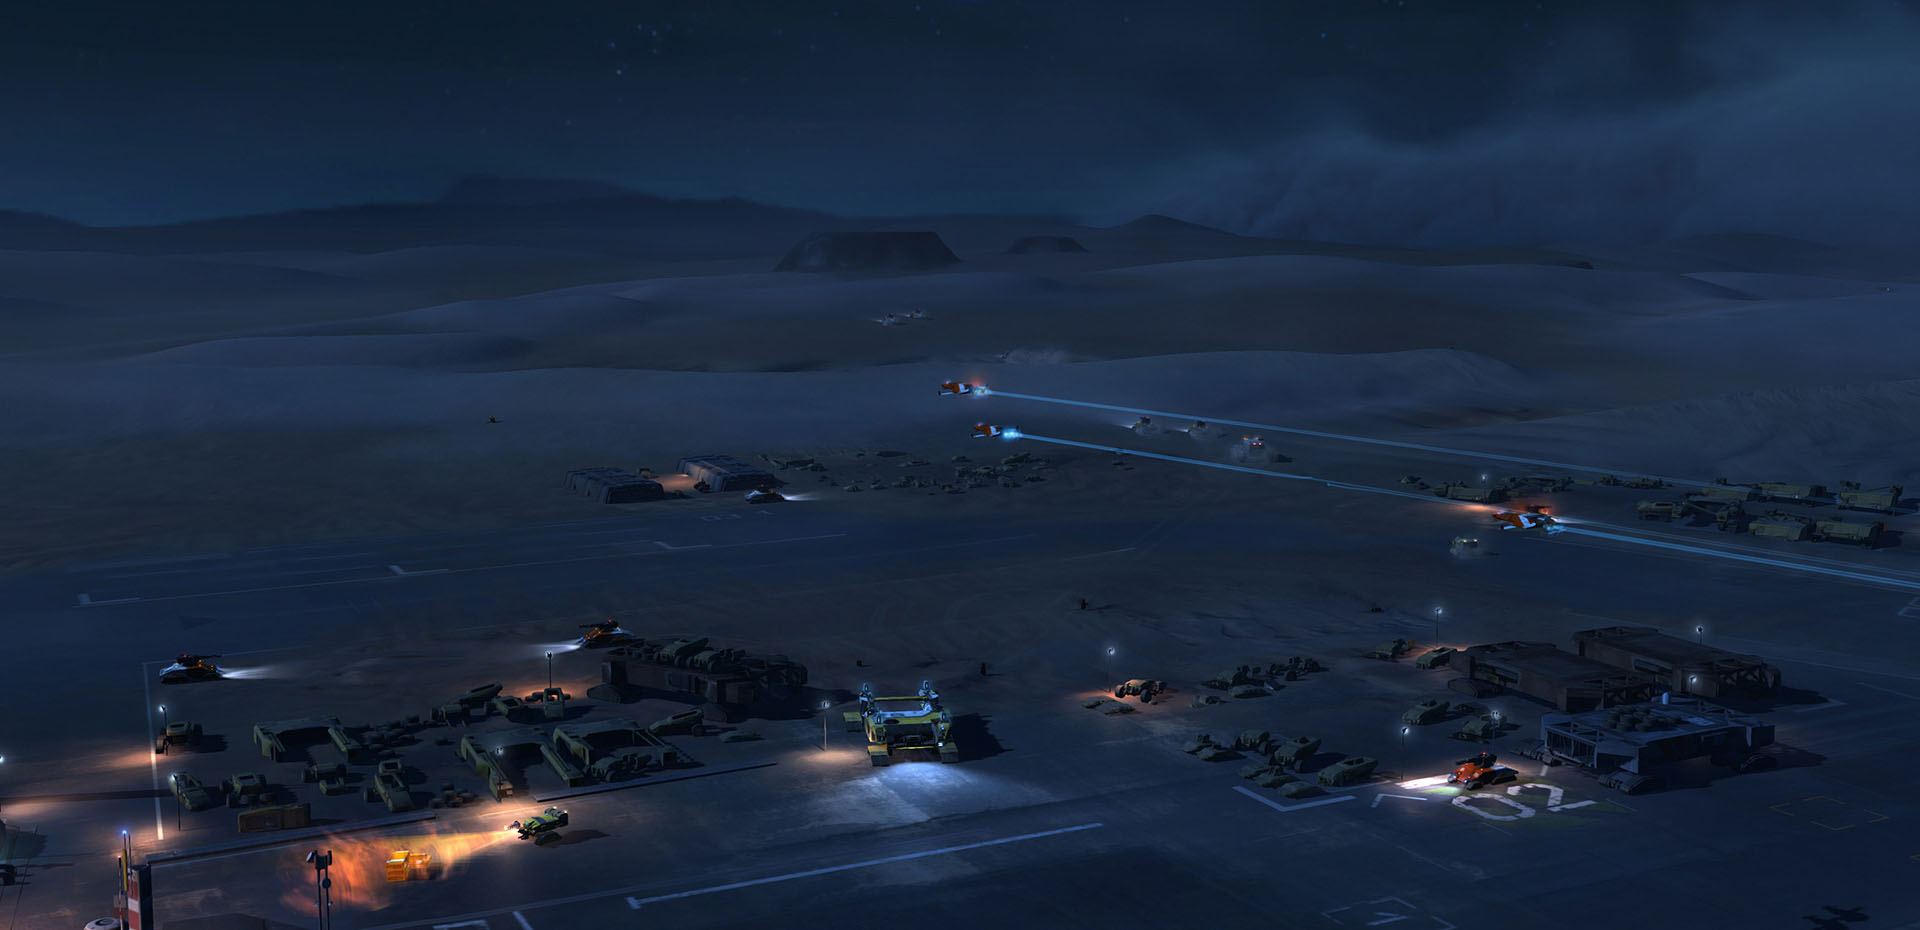 Homeworld Deserts of Kharak - VGProfessiona Review (6)